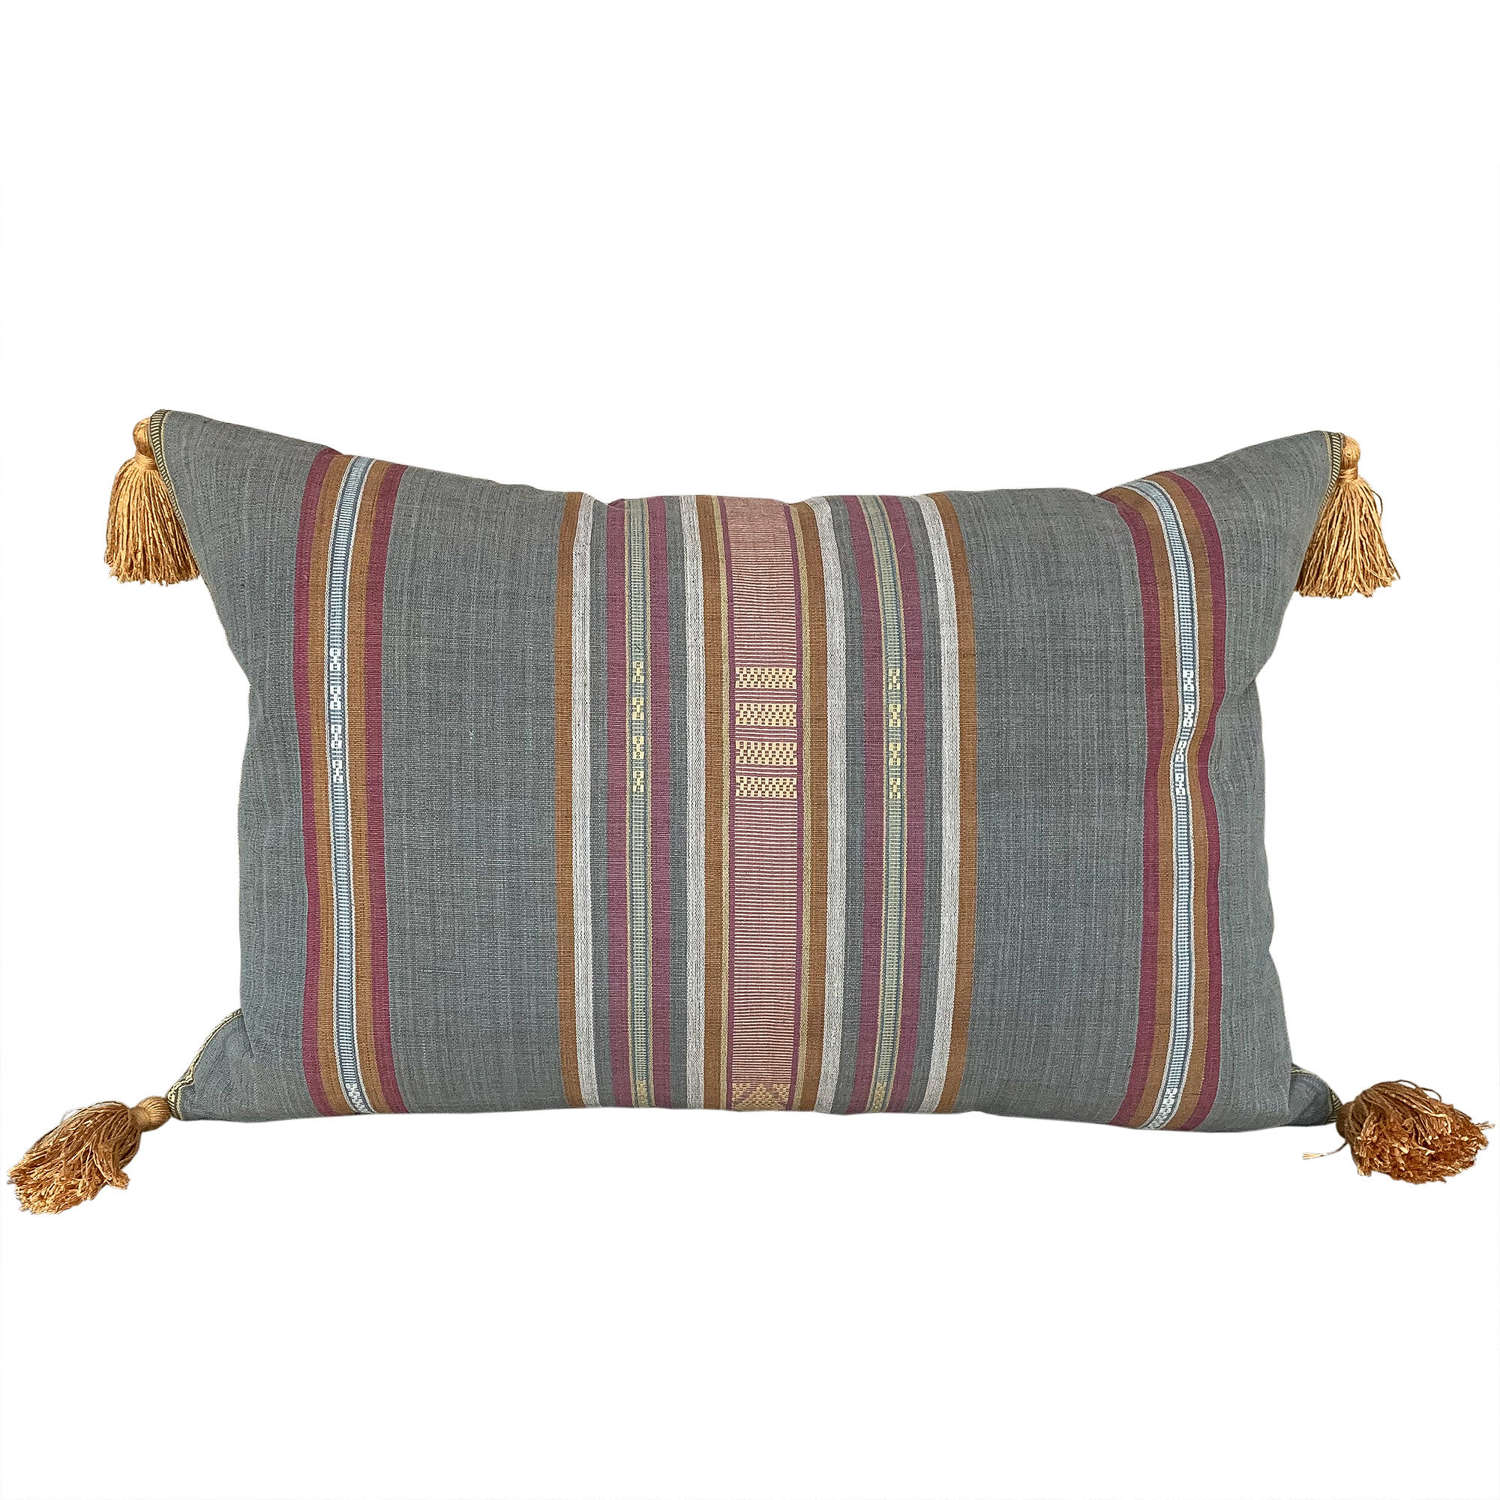 Lombok cushions with tassels